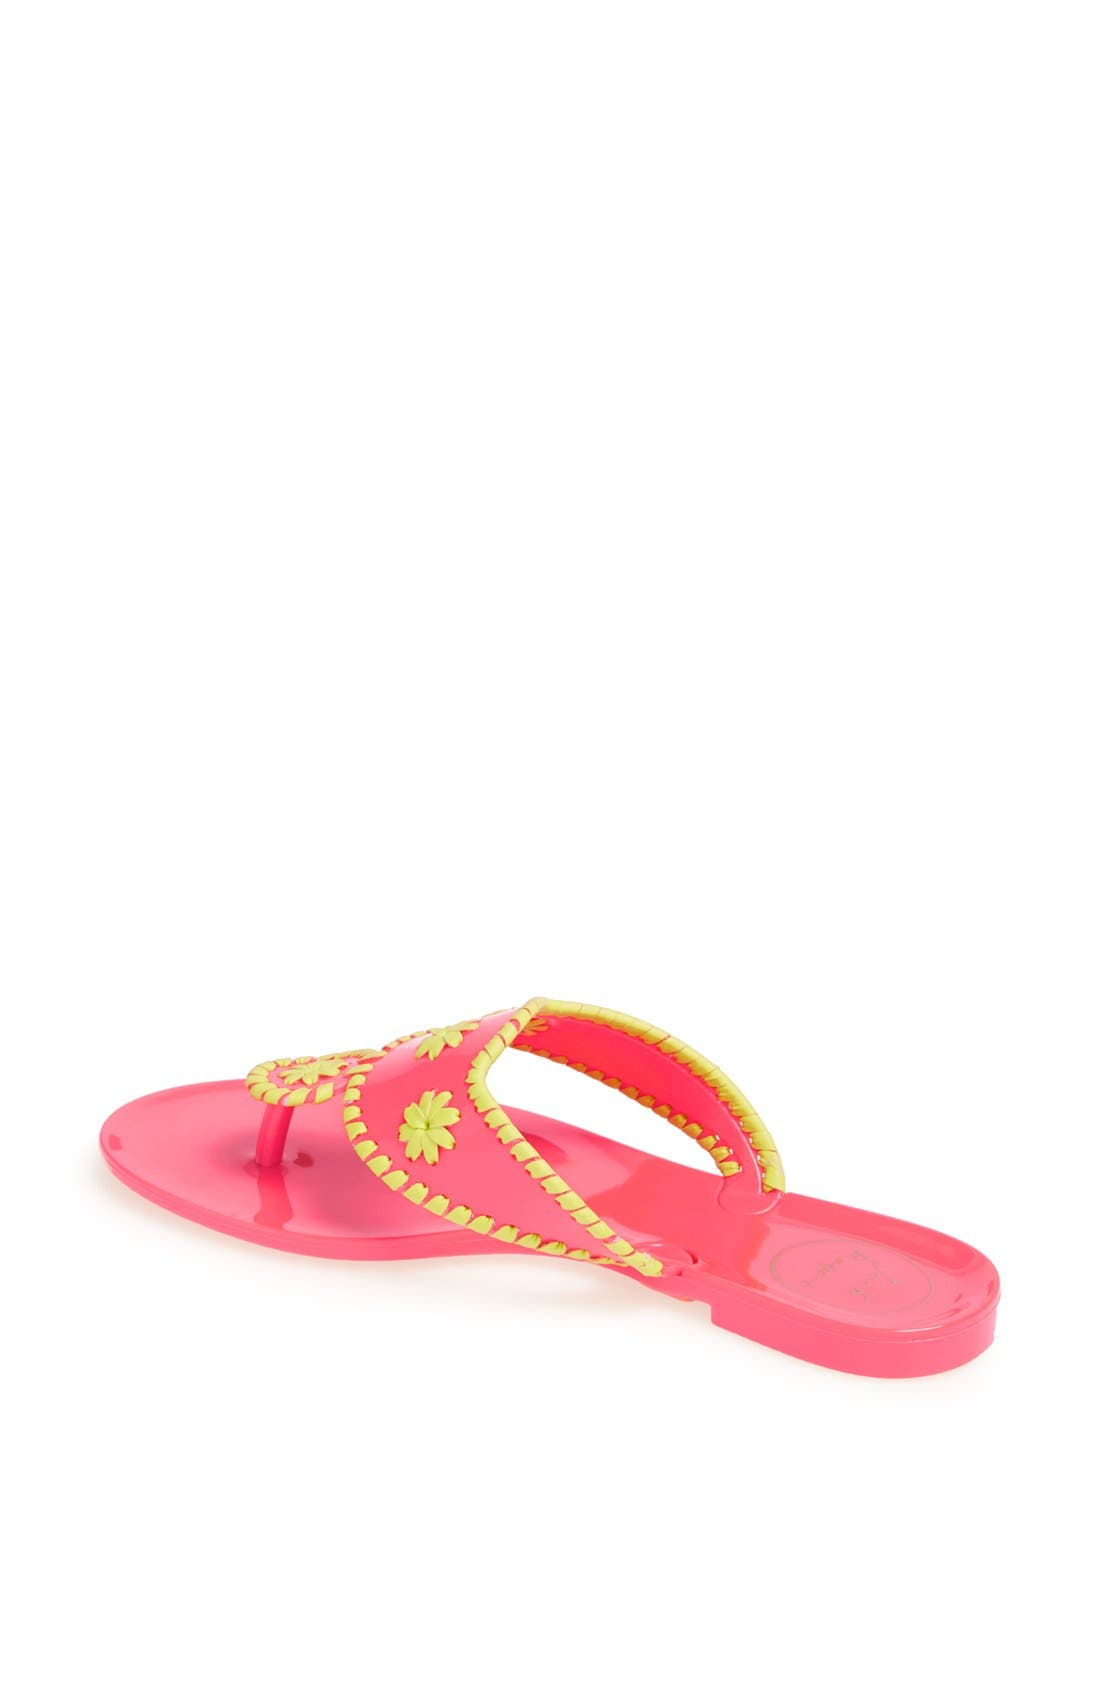 Alternate Image 2  - Jack Rogers 'Jr' Jelly Sandal